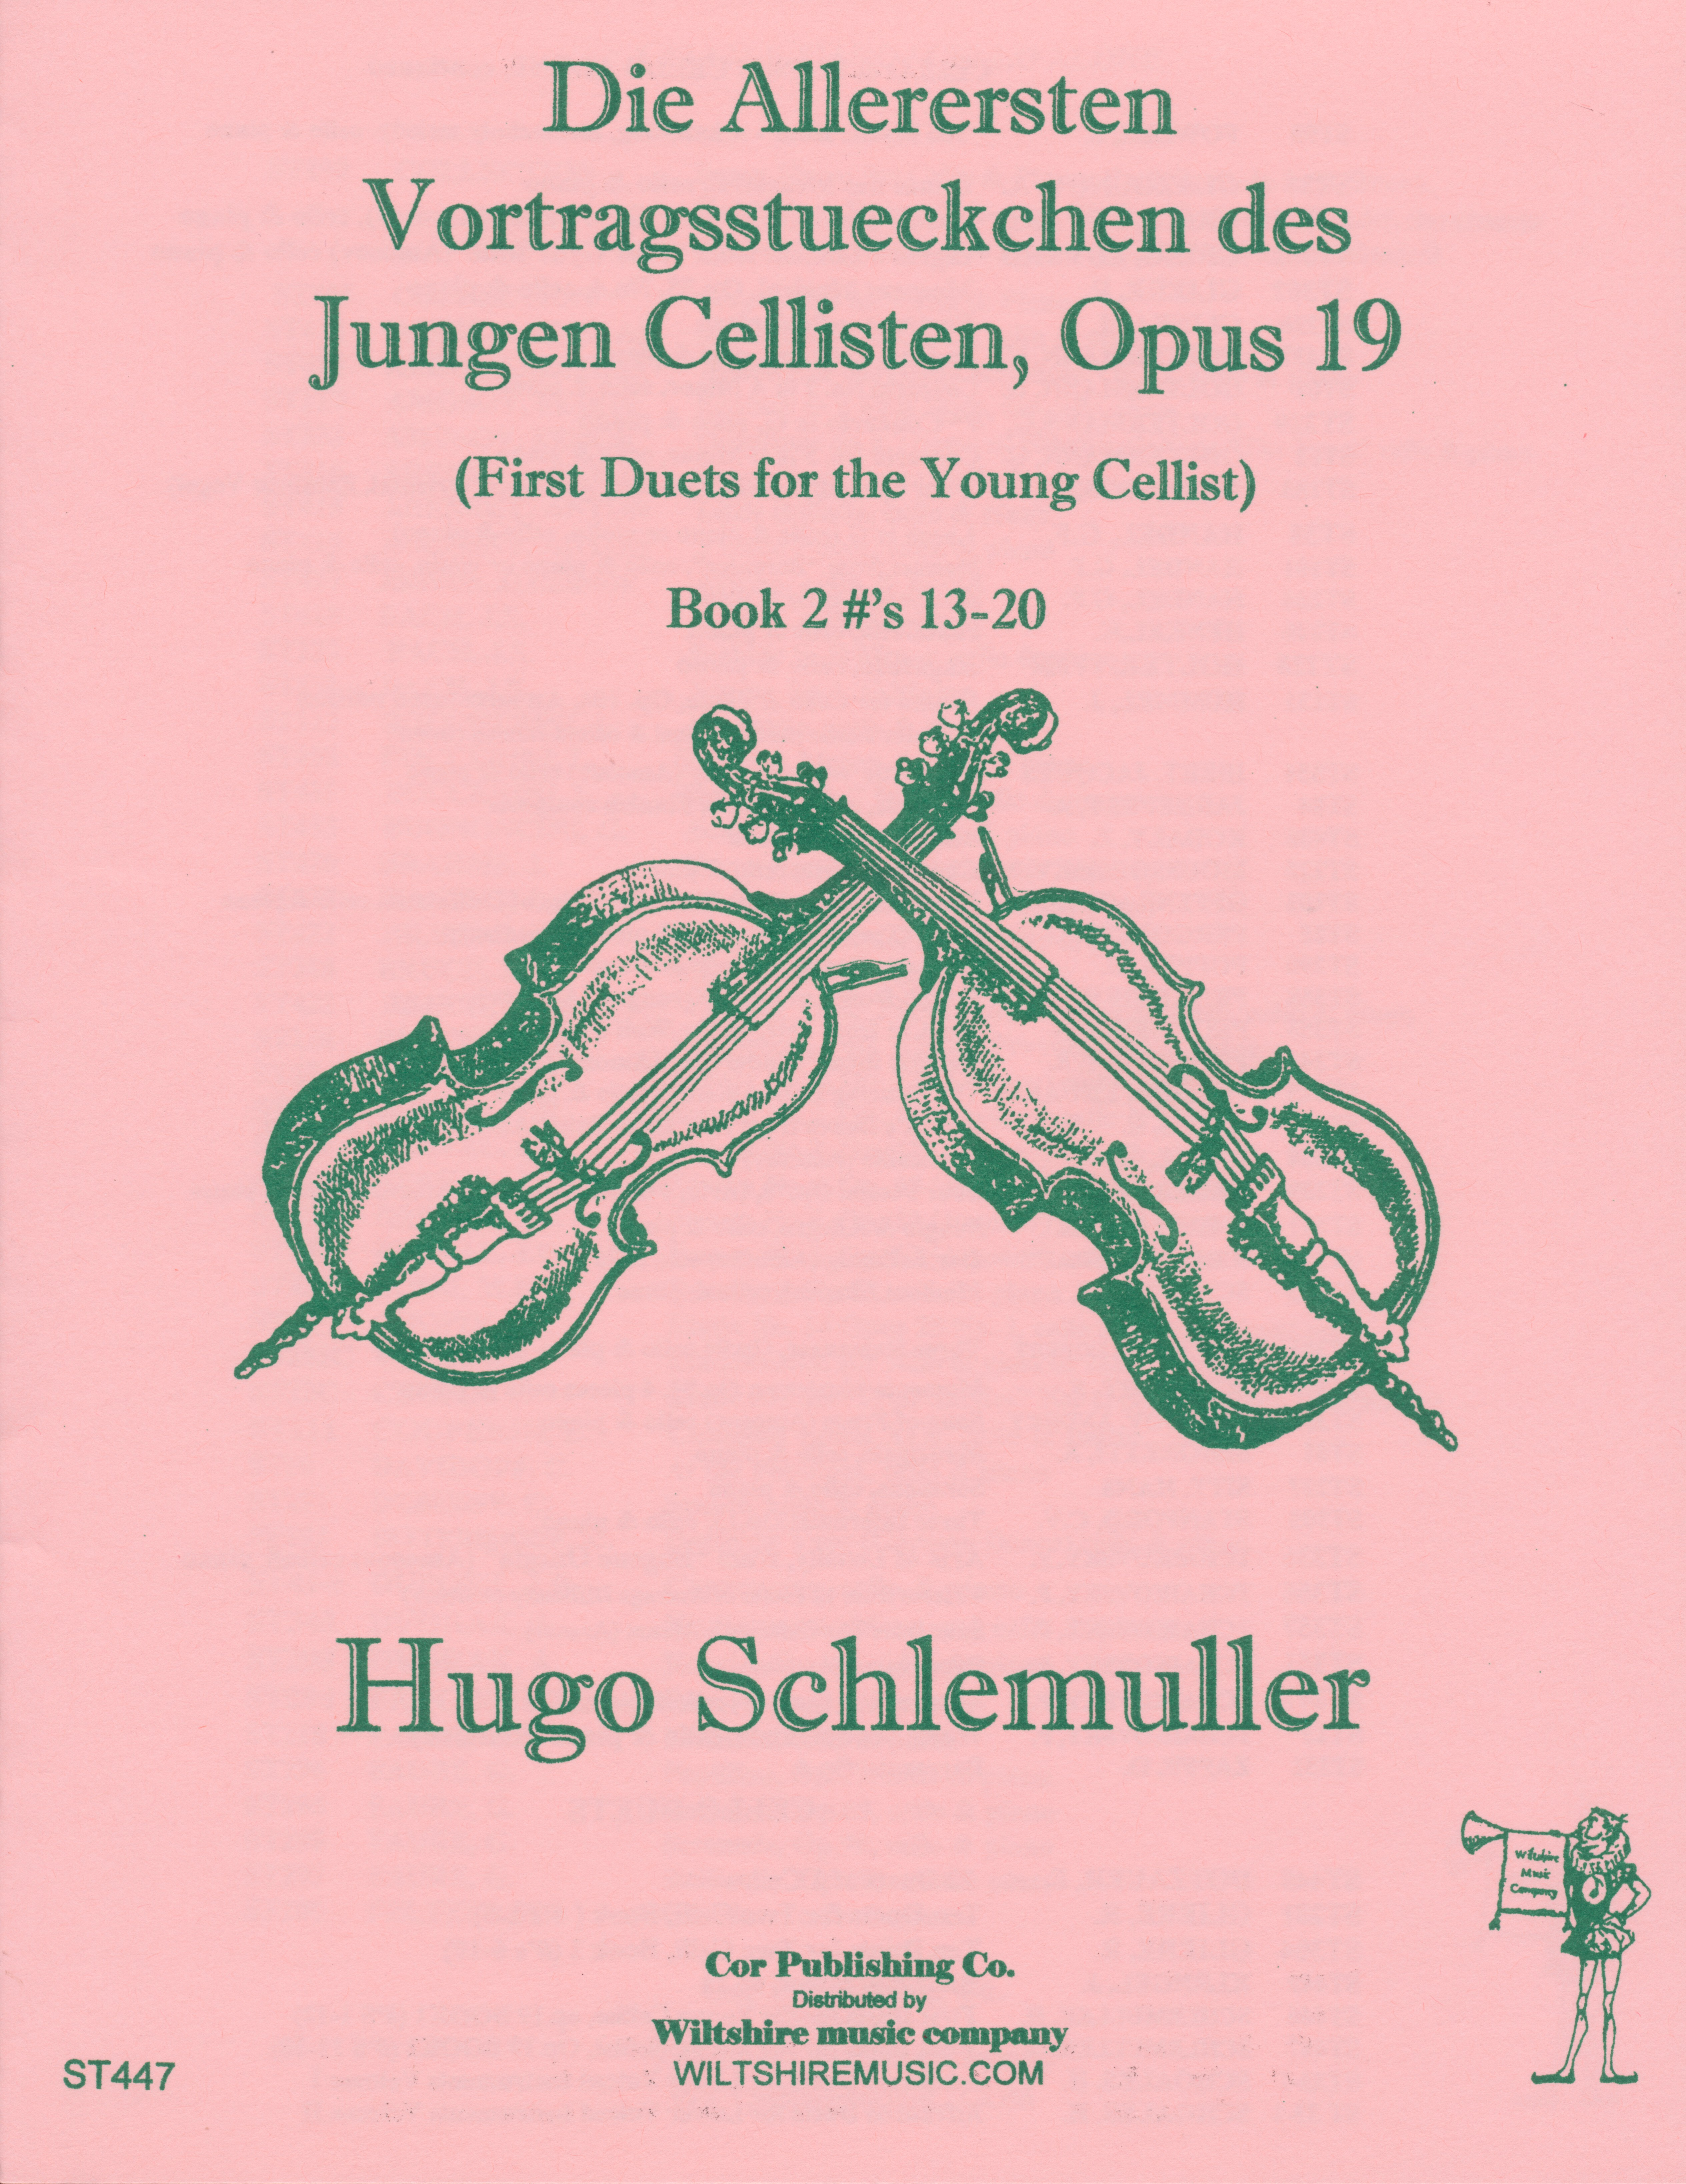 First Duets for the Young Cellist, Op.19, Book 2, Hugo Schlemull